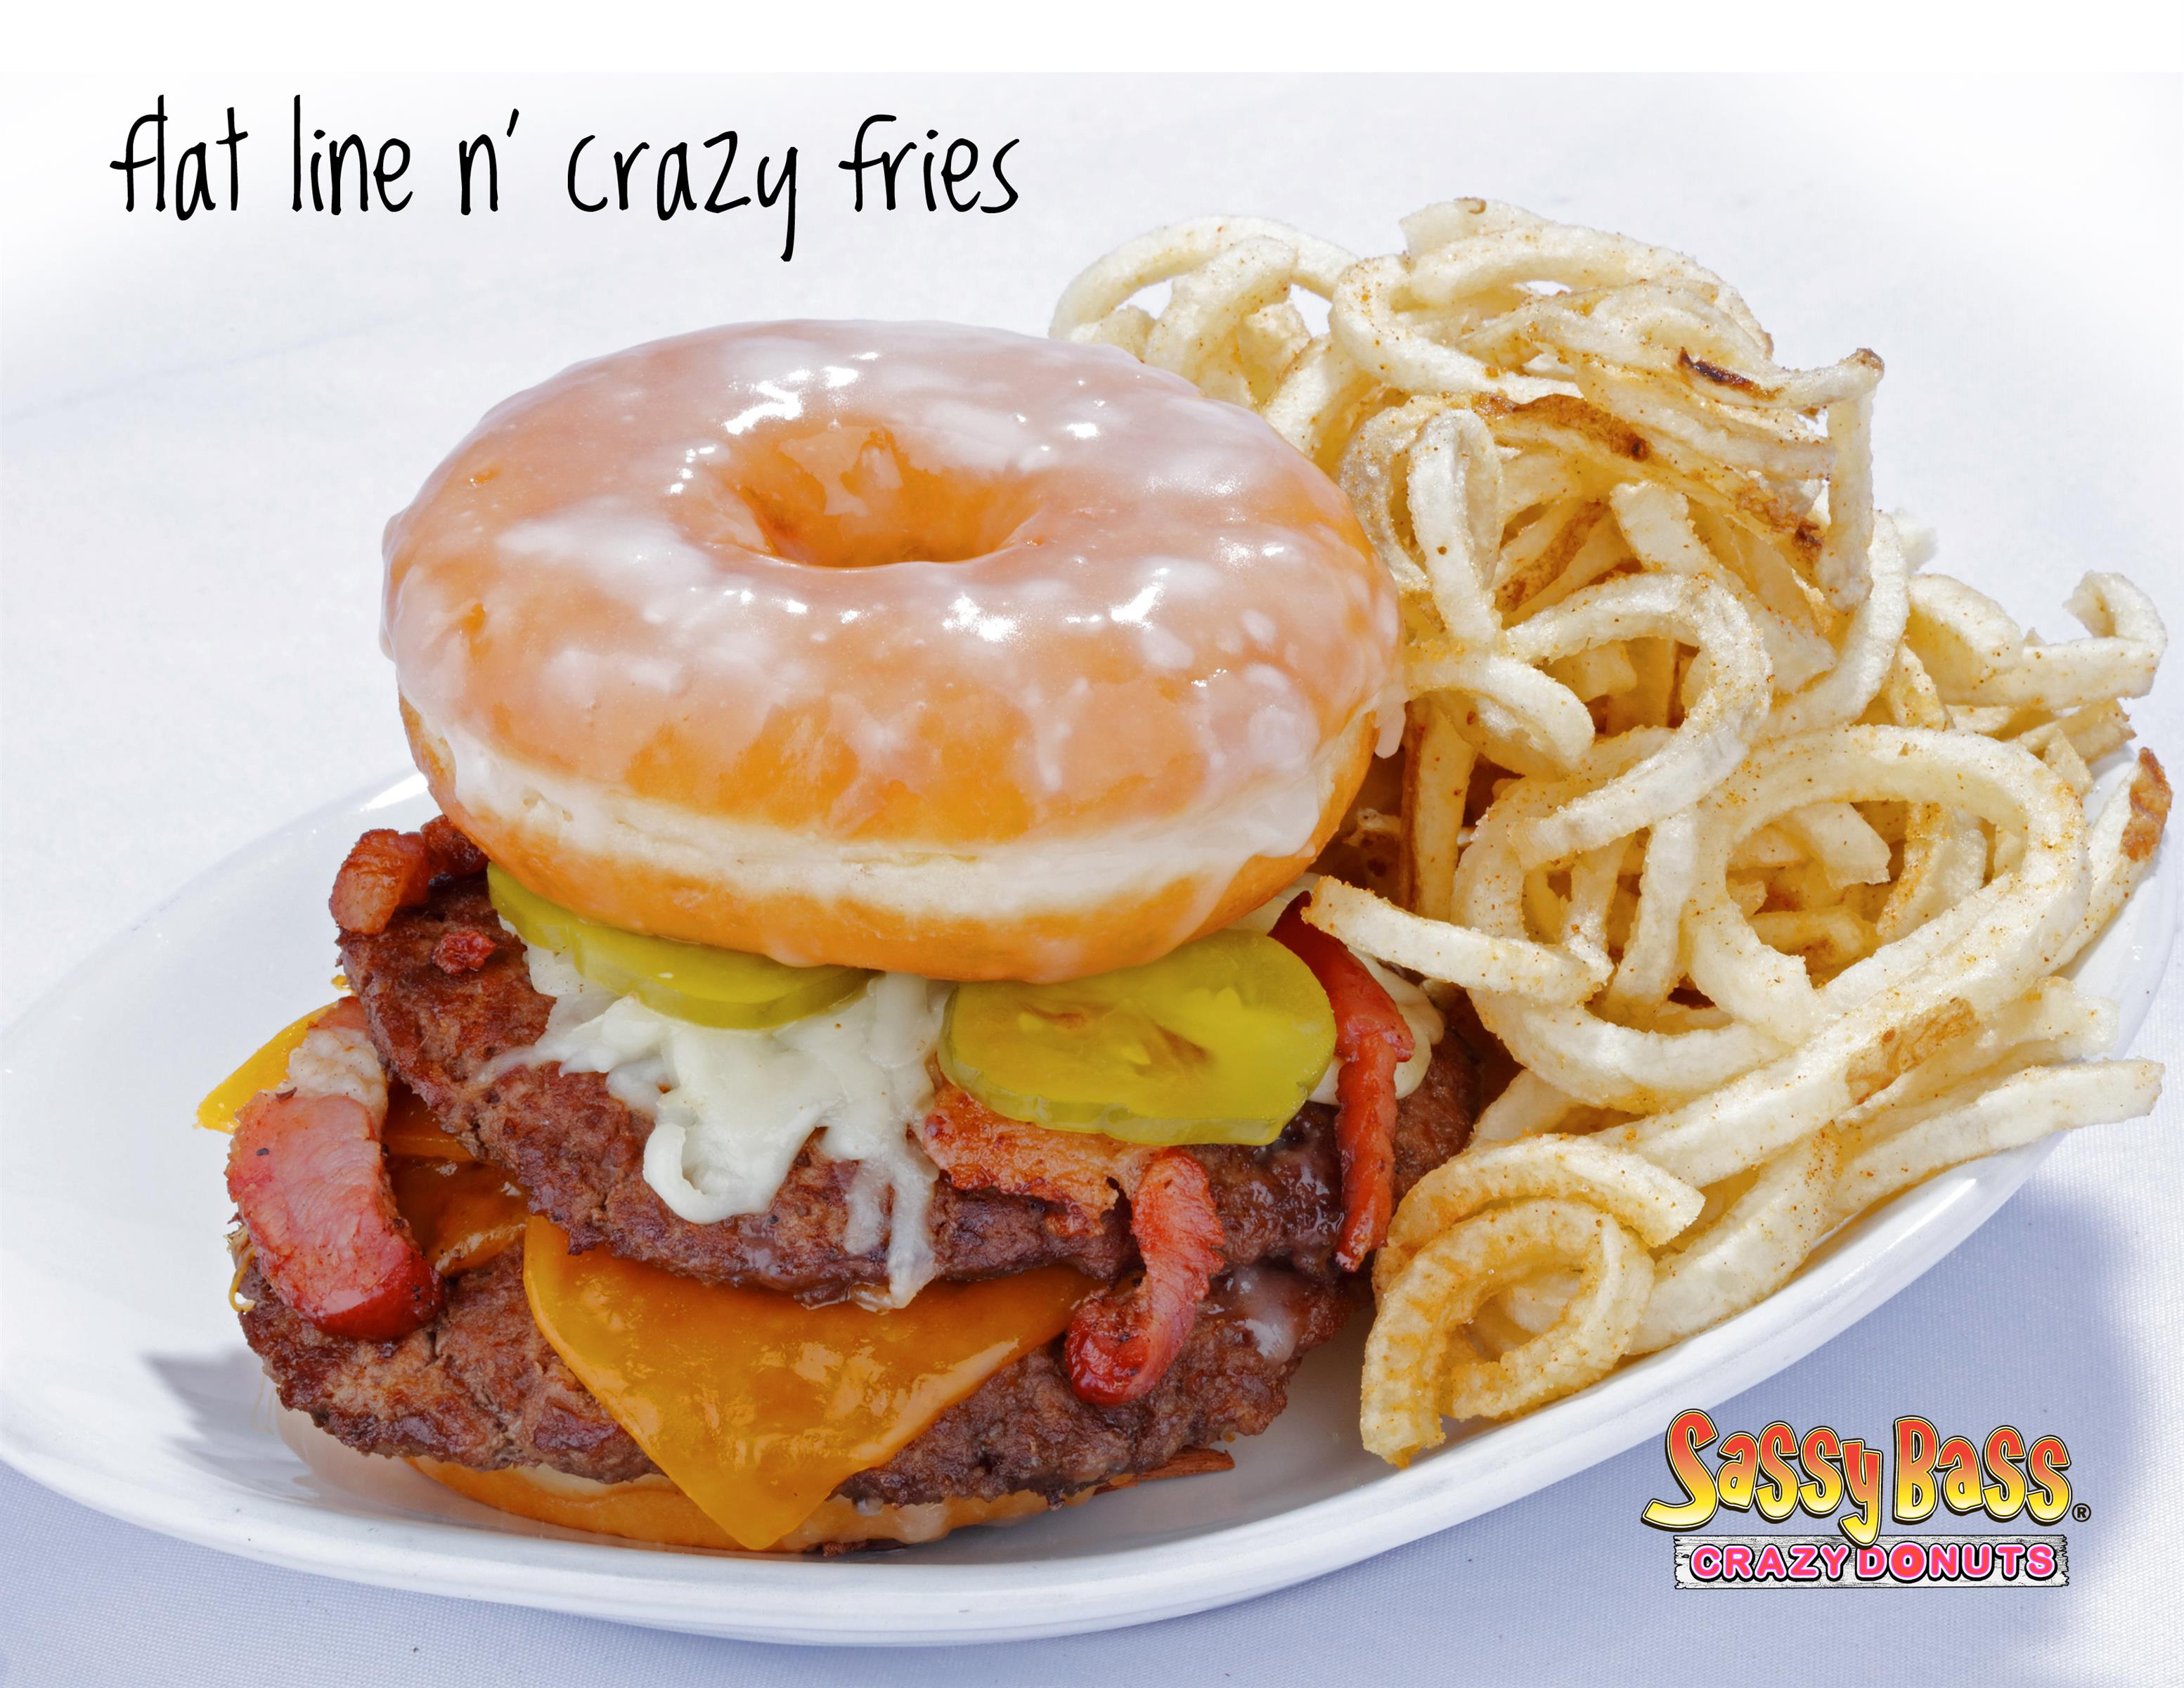 Flat line donut burger with curly fries